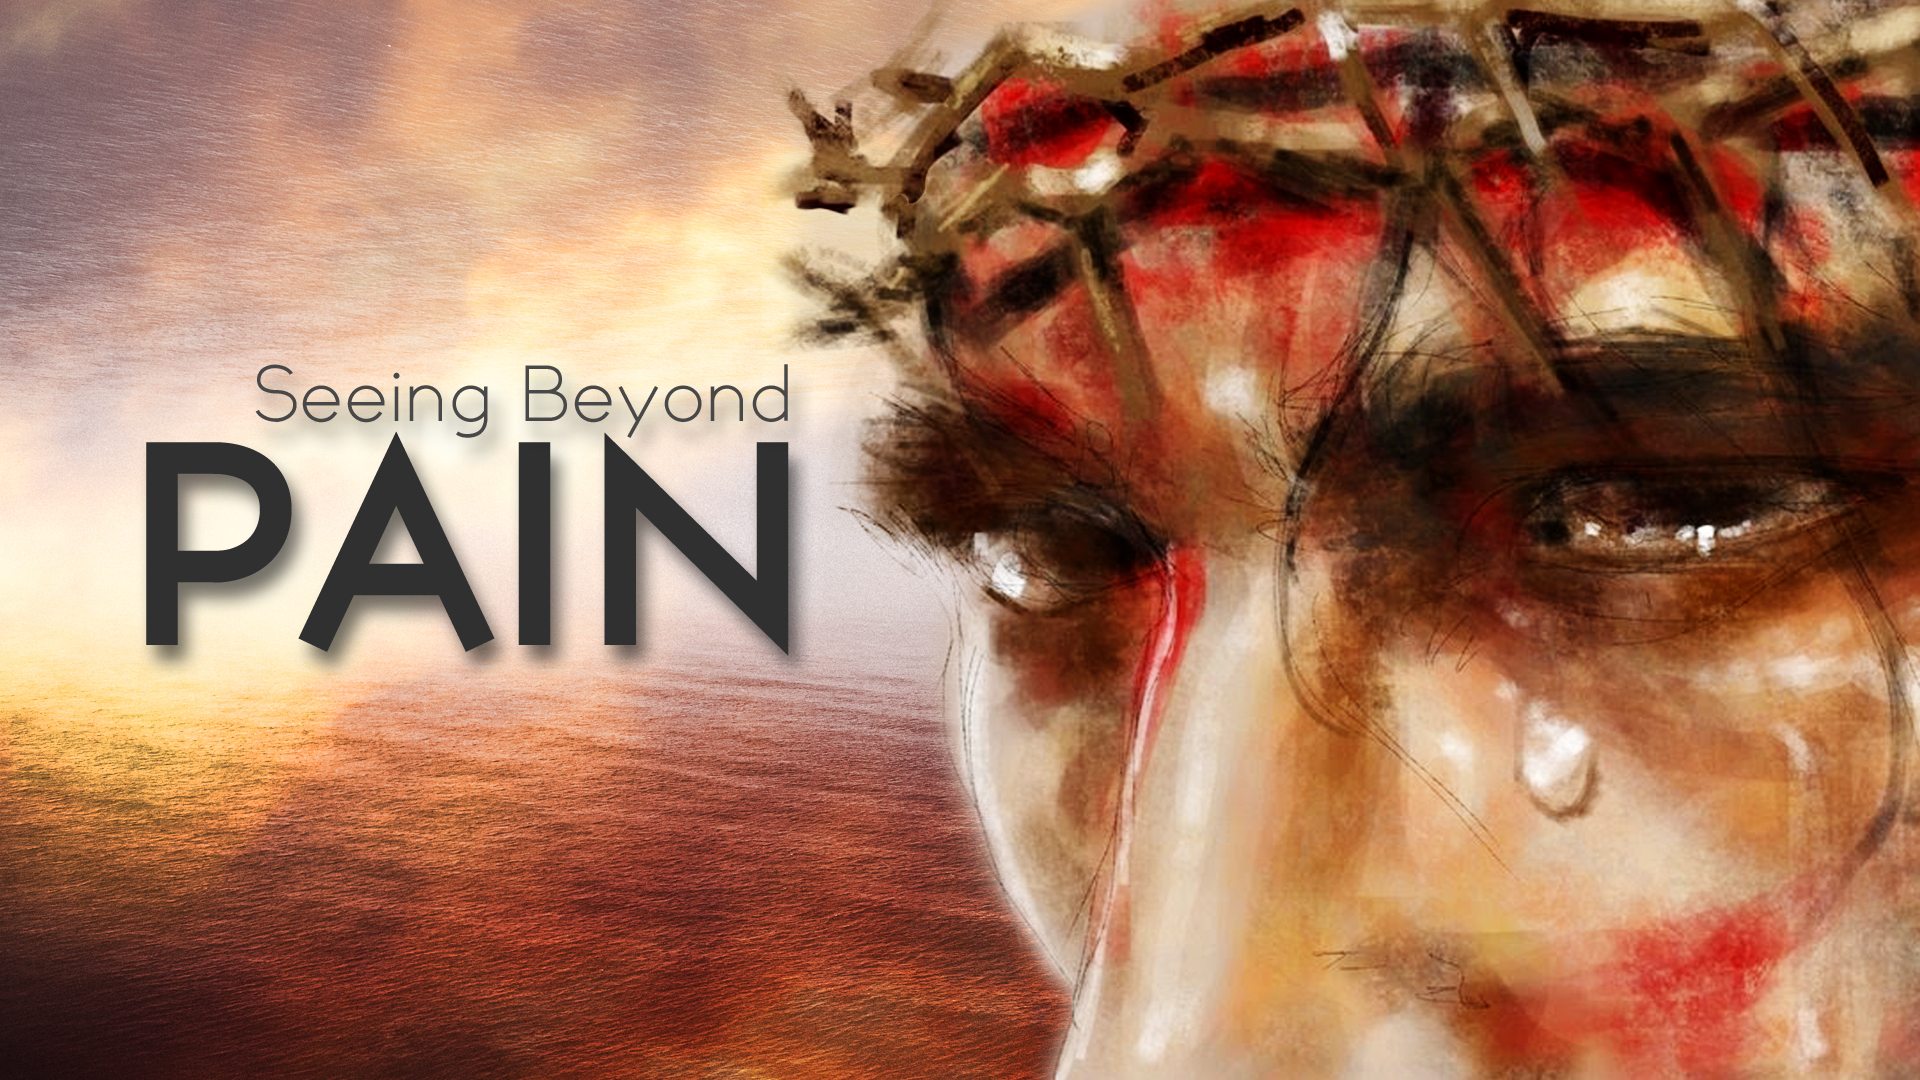 Seeing Beyond Our Pain